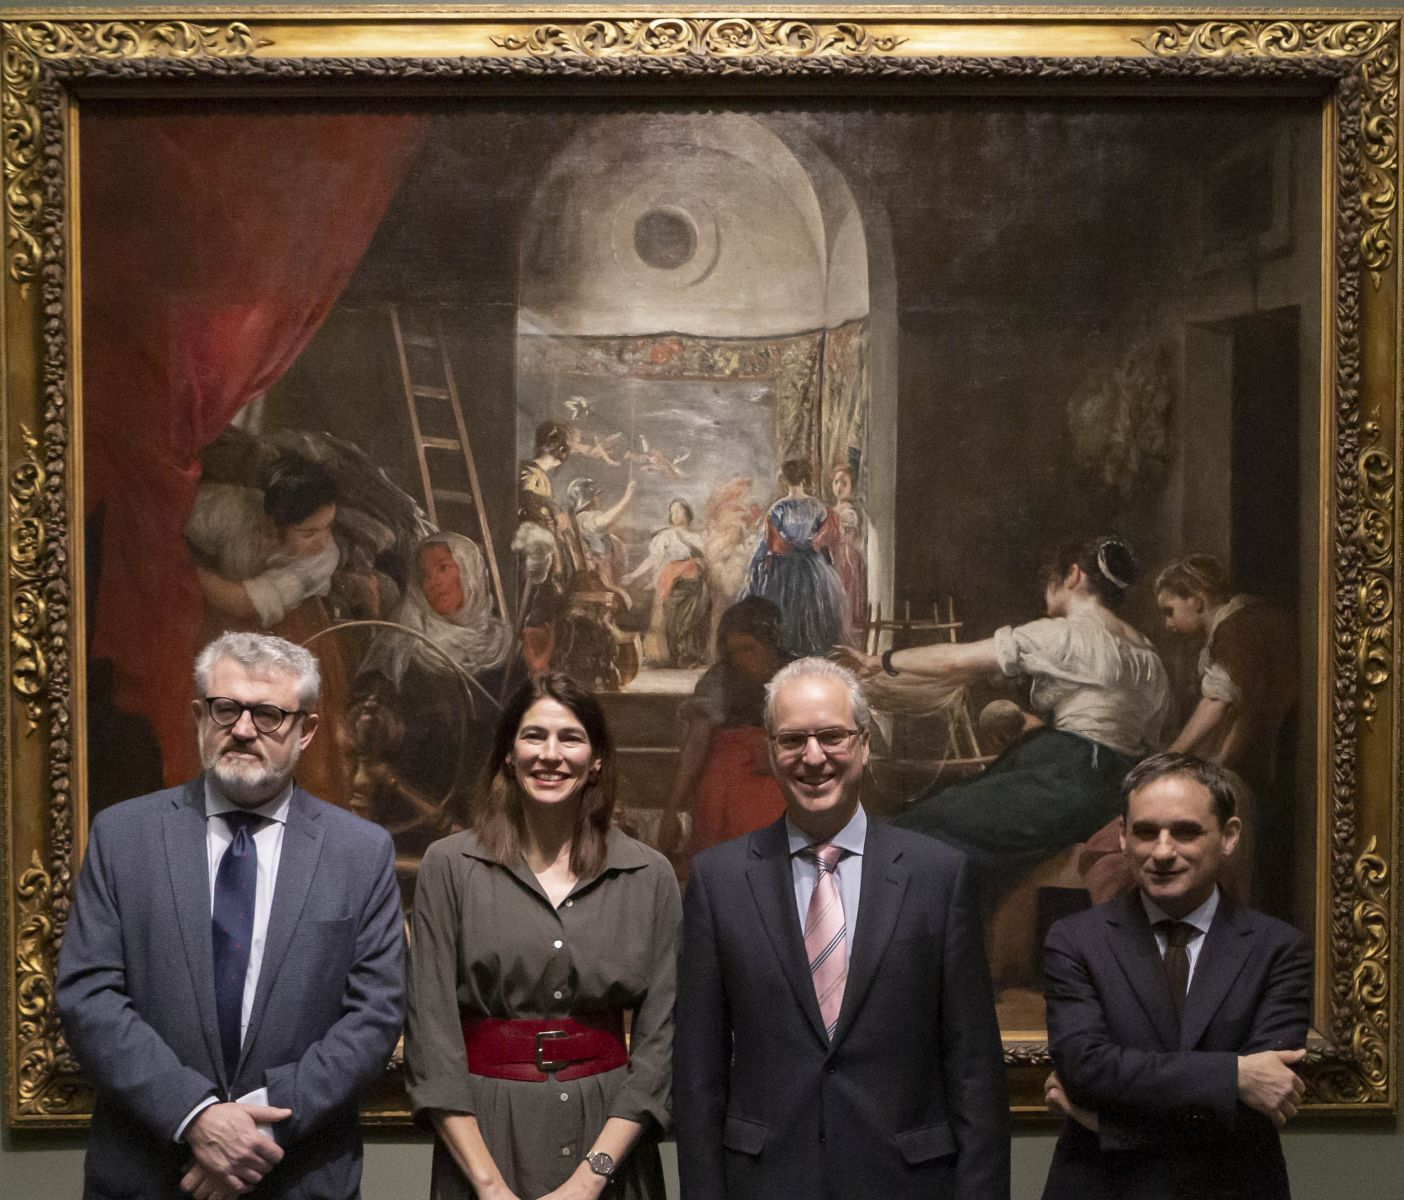 American Express contributes for improved Velázquez painting display